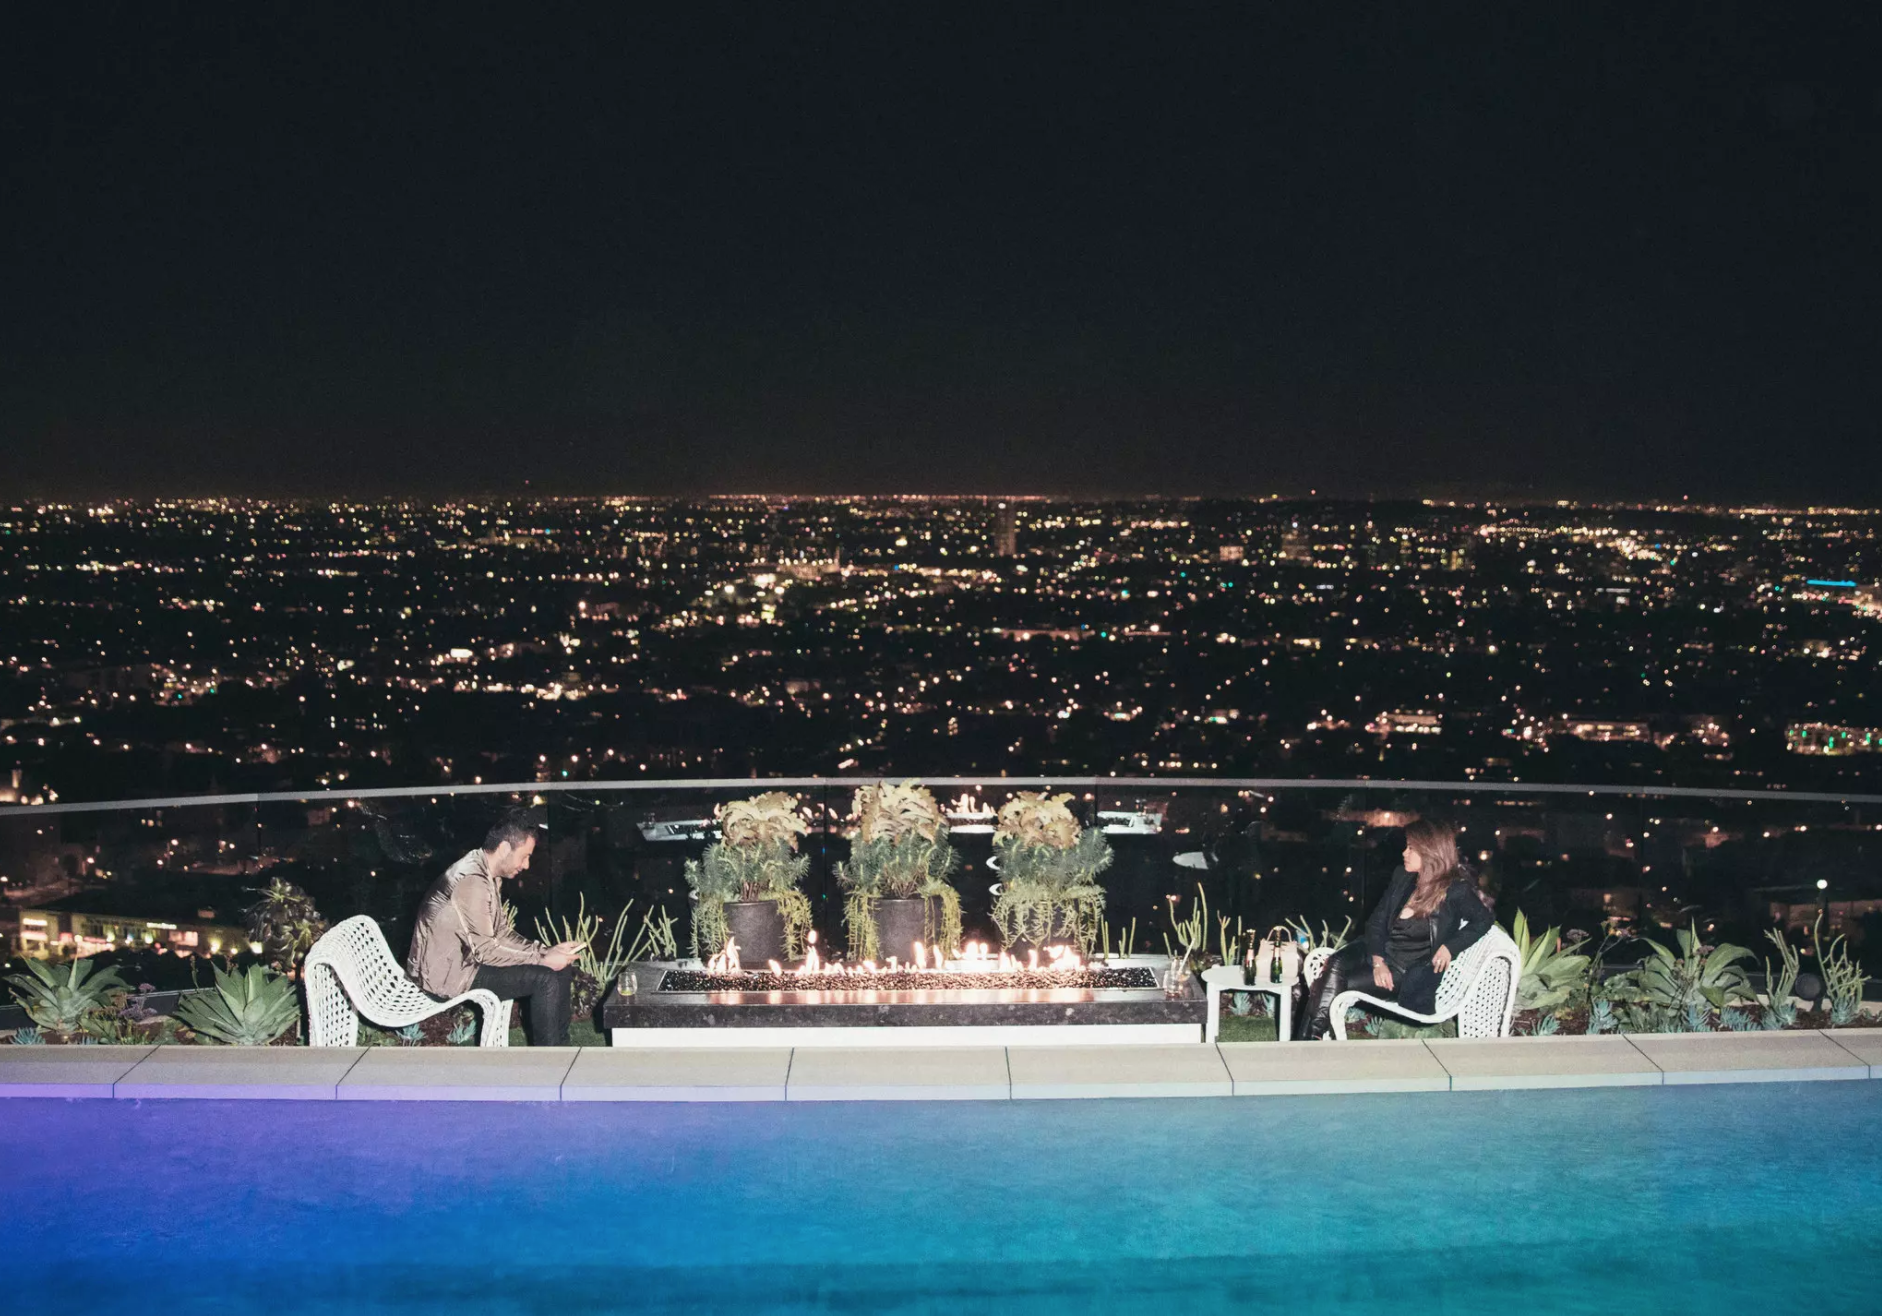 Guests enjoying their phones and the views by the pool at the open house at 1625 Woods Drive in Los Angeles.